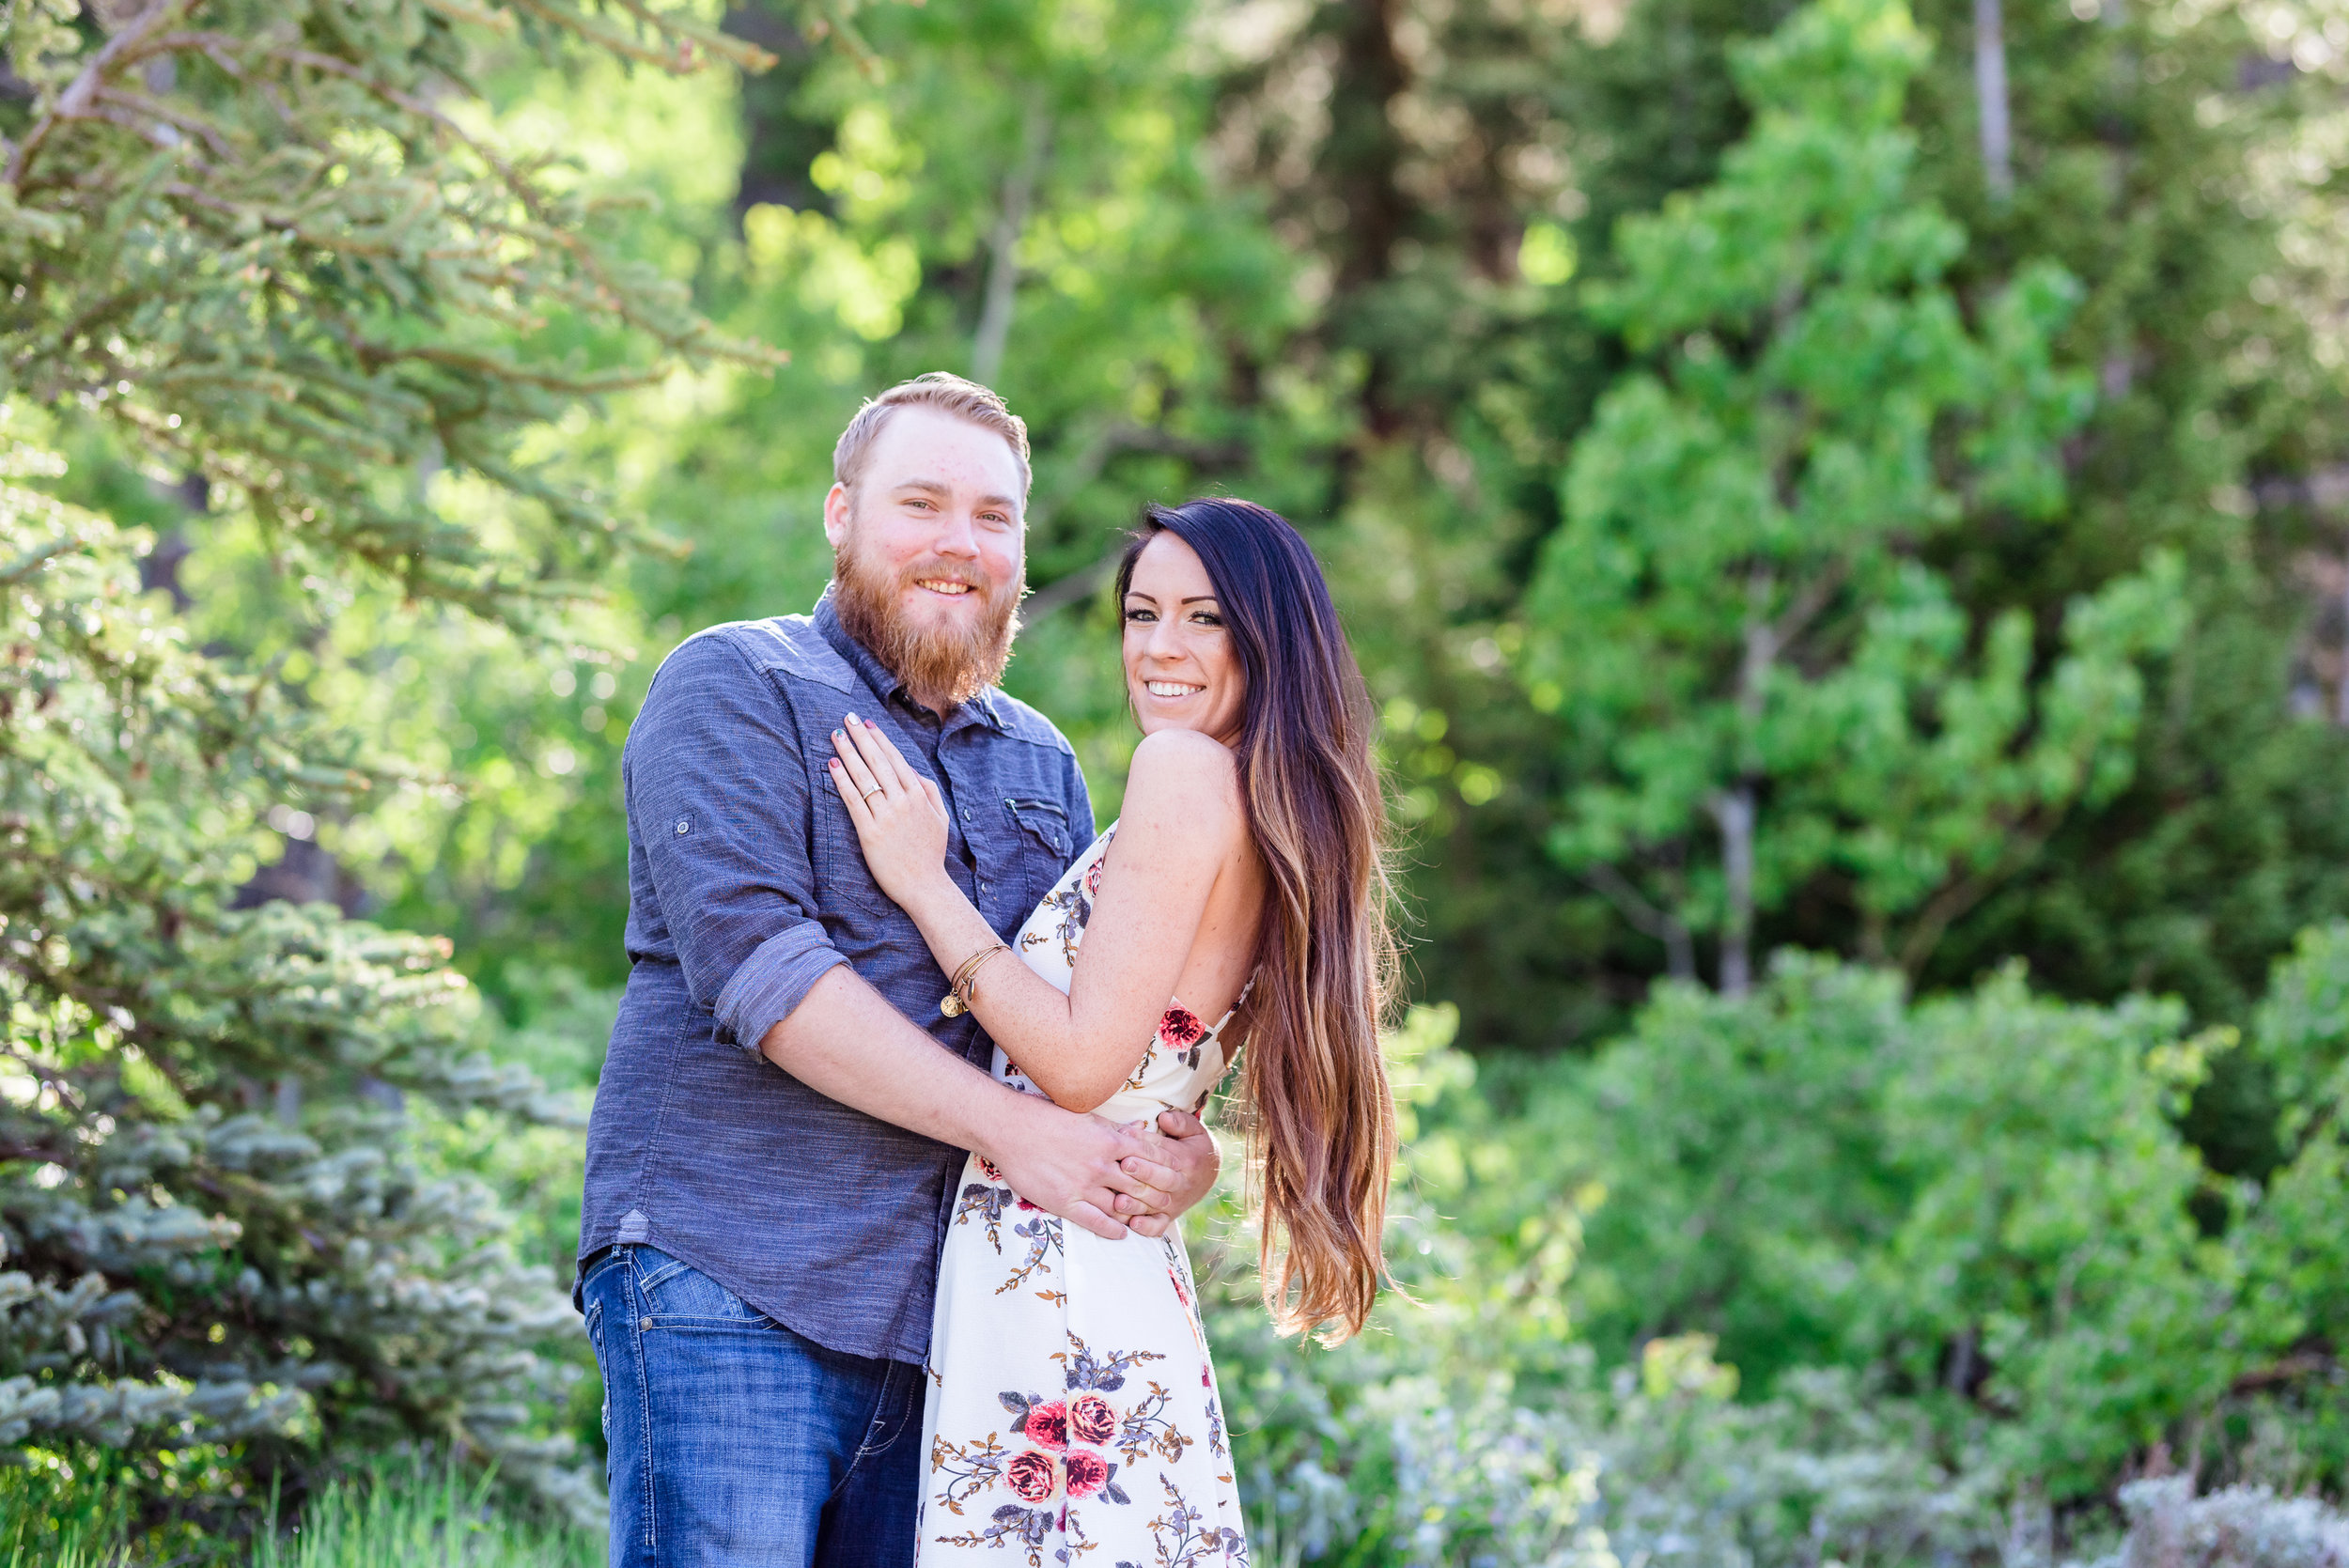 Morning engagement session in the Salt Lake mountains. Engagement session at Jordan Pines Campground in Big Cottonwood Canyon.